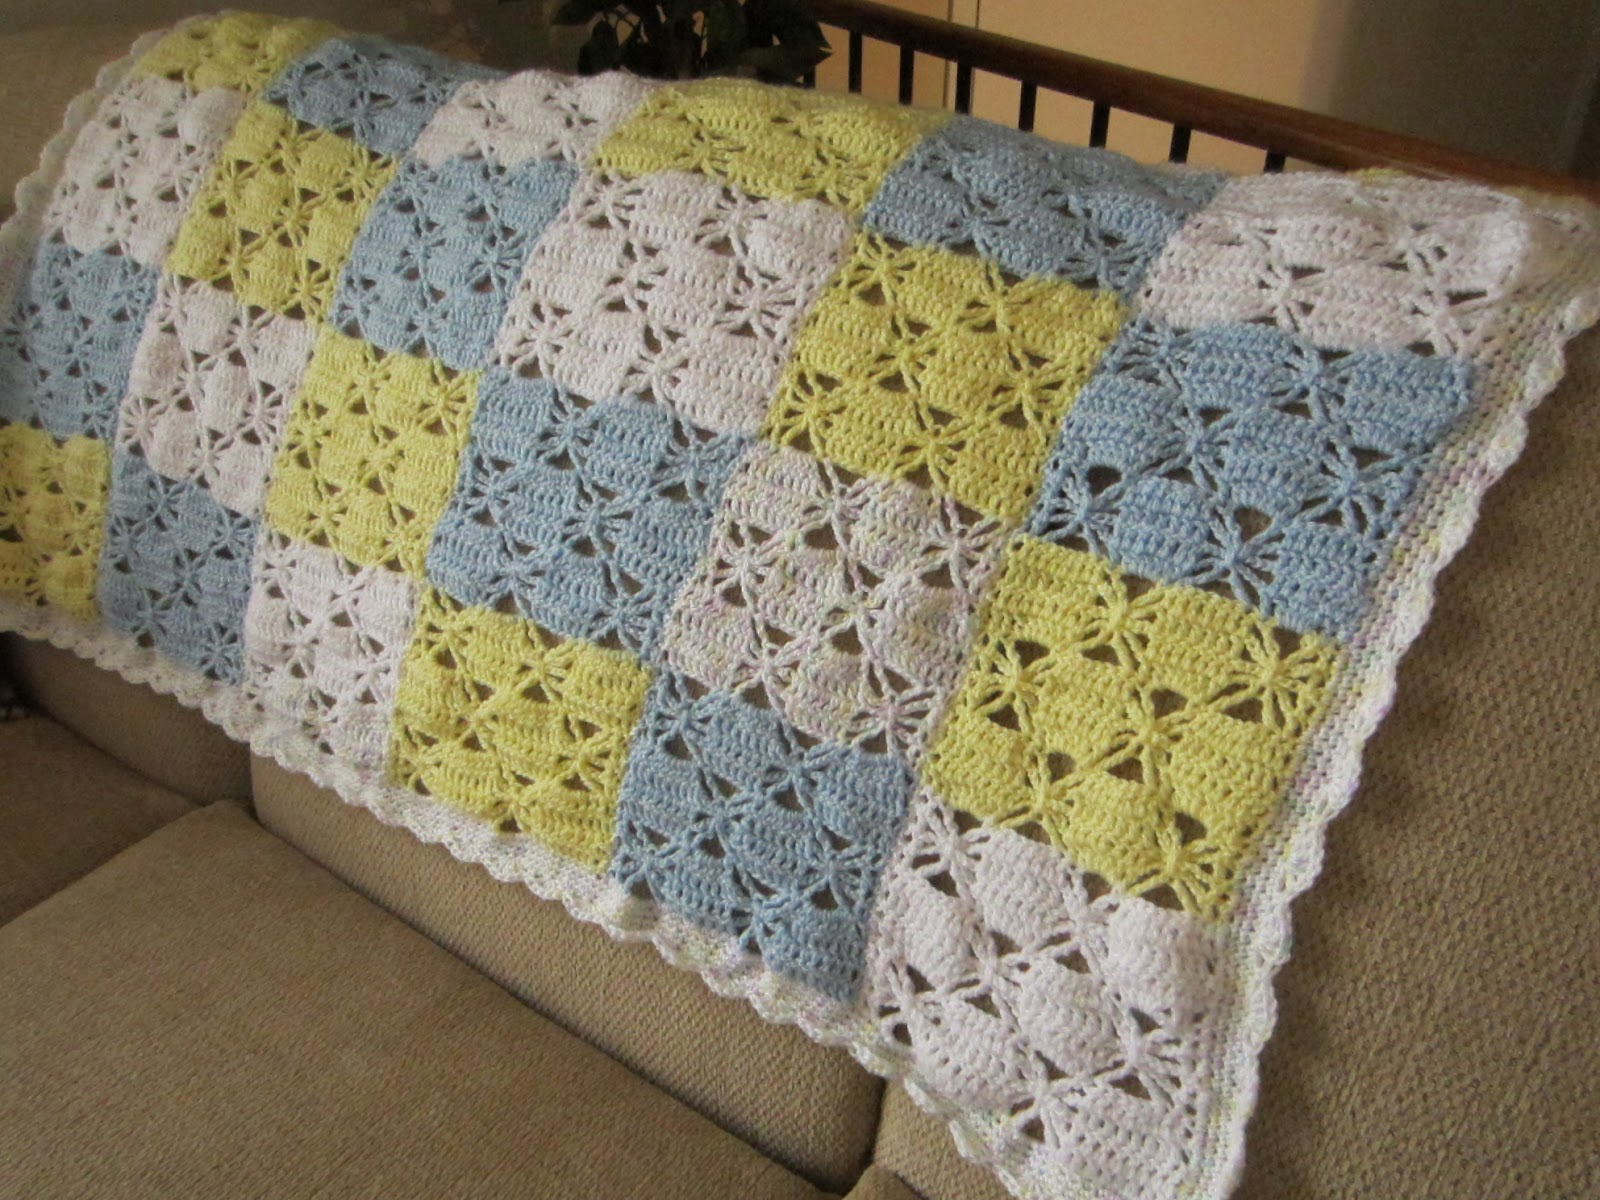 Crocheting Easy Baby Blanket : ... to knitting especially for baby blankets i made this blanket with yarn